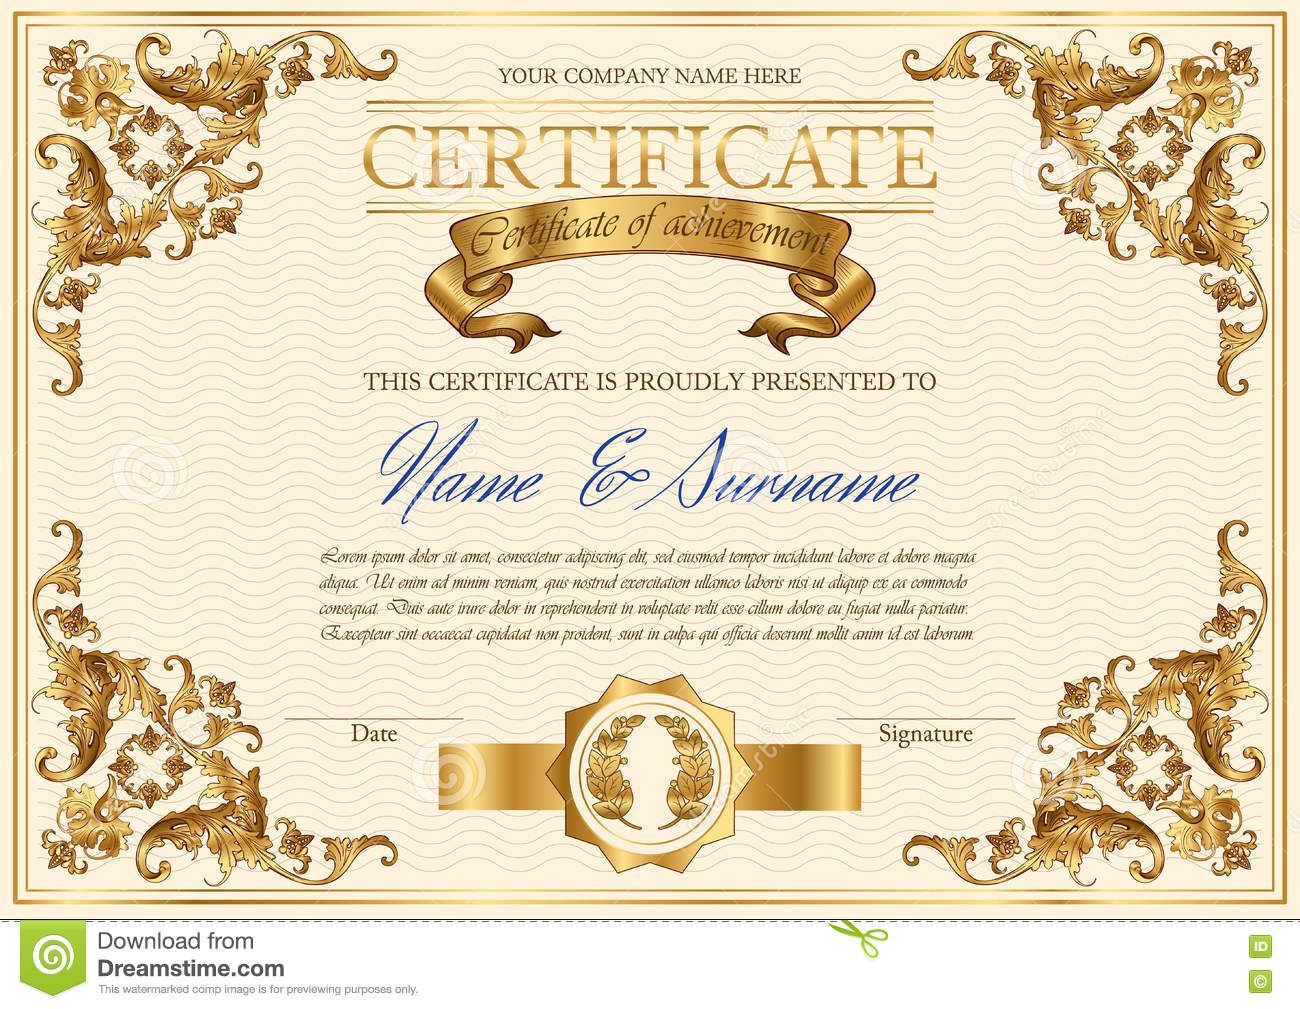 Vector vintage certificate stock vector. Illustration of ...